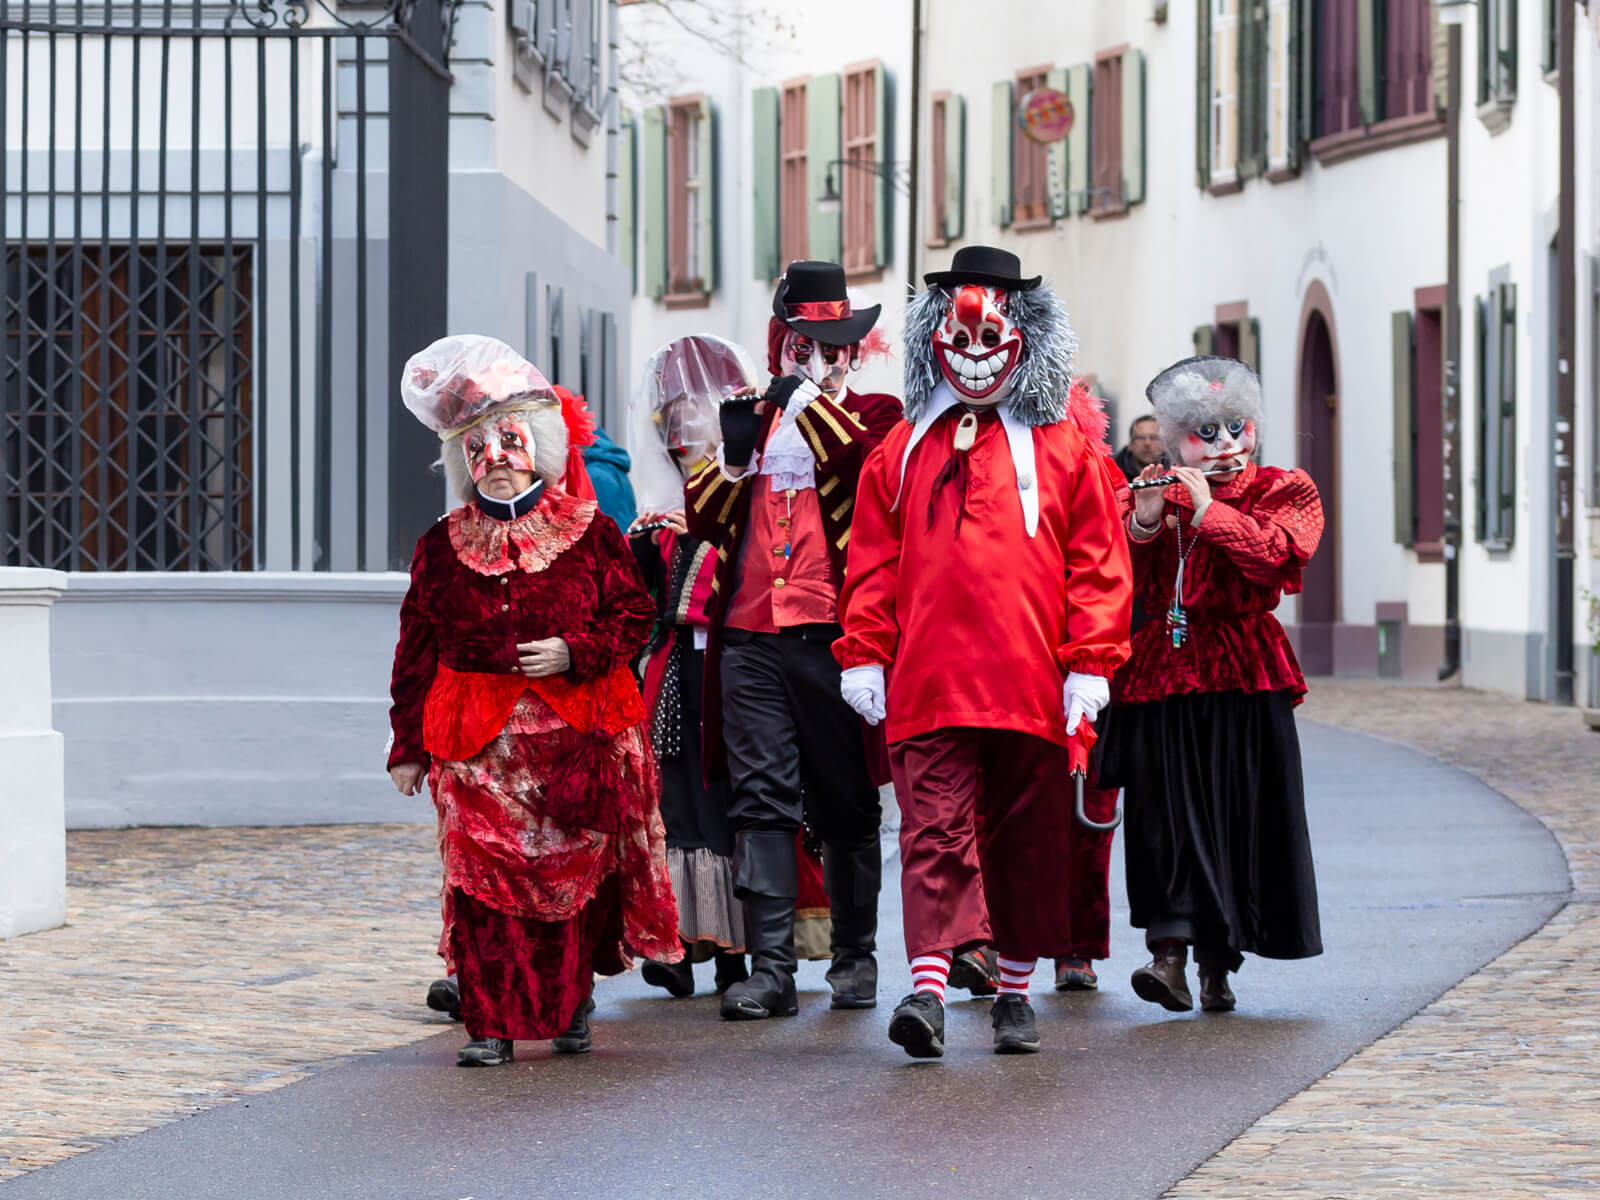 Know these typical masks and costumes at Swiss carnivals